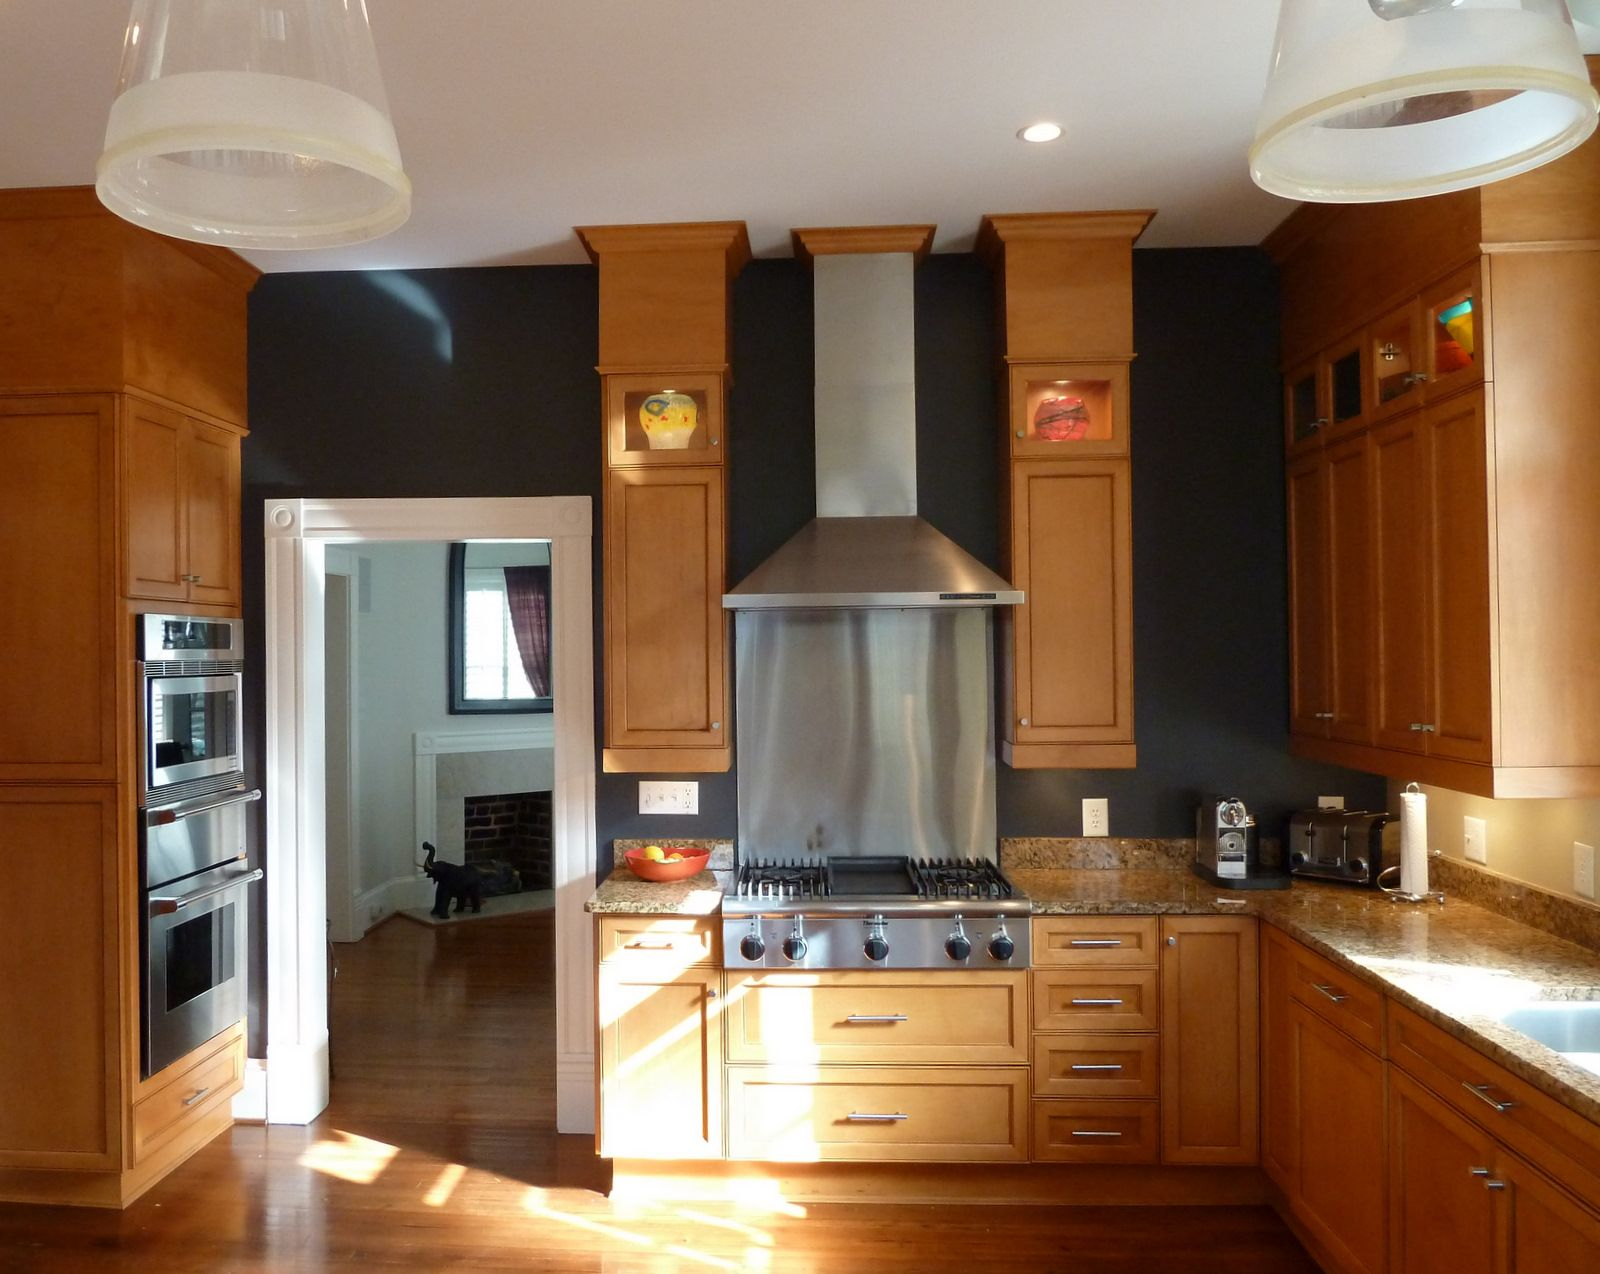 Black Walls In The Kitchen With Oak Cabinets Needs A Lot Of Light